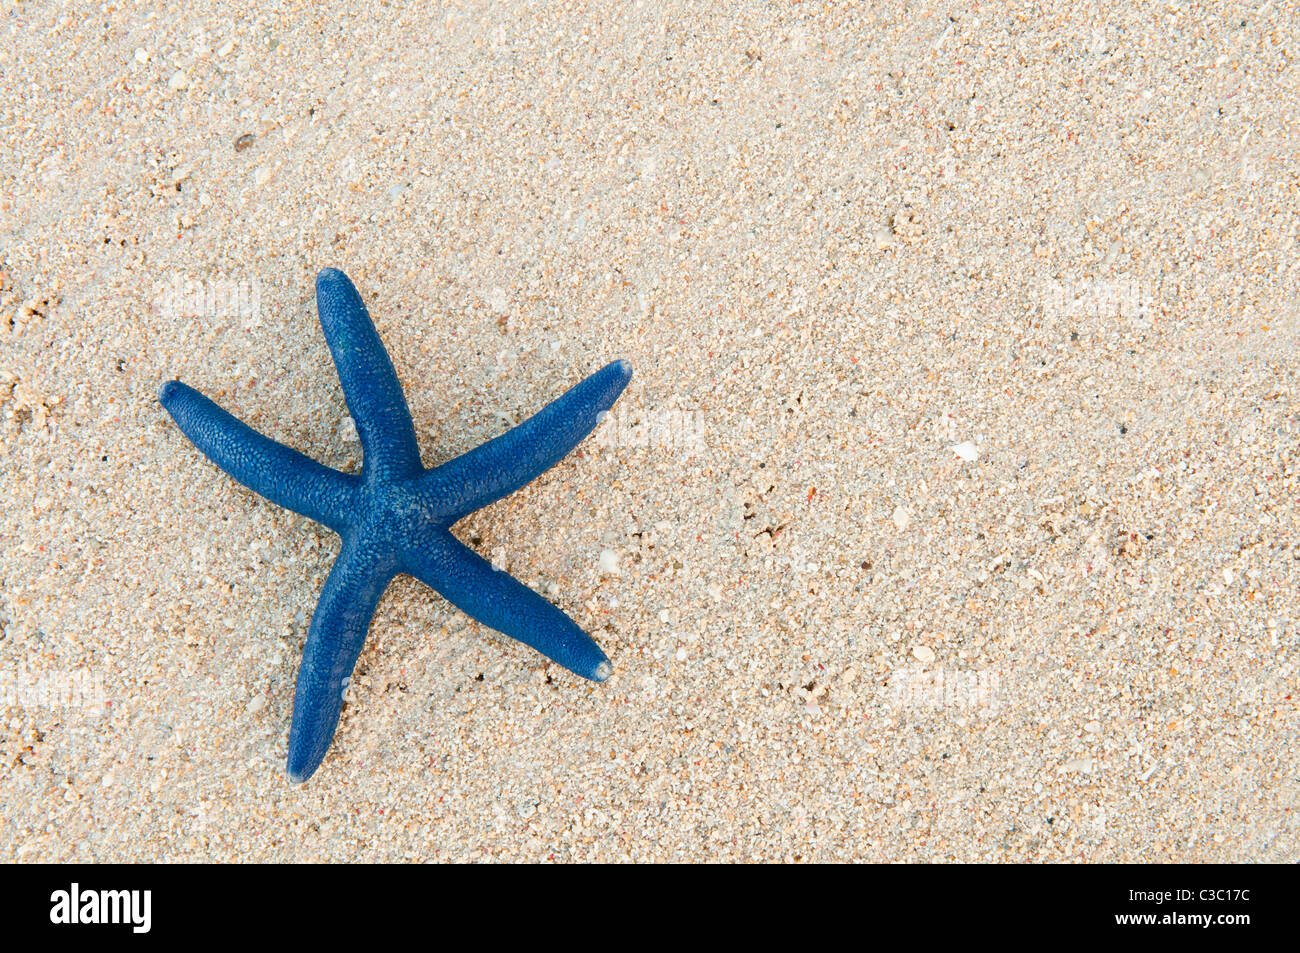 Blue sea star on sandy beach at Shangri-La Resort, Viti Levu Island, Fiji. - Stock Image